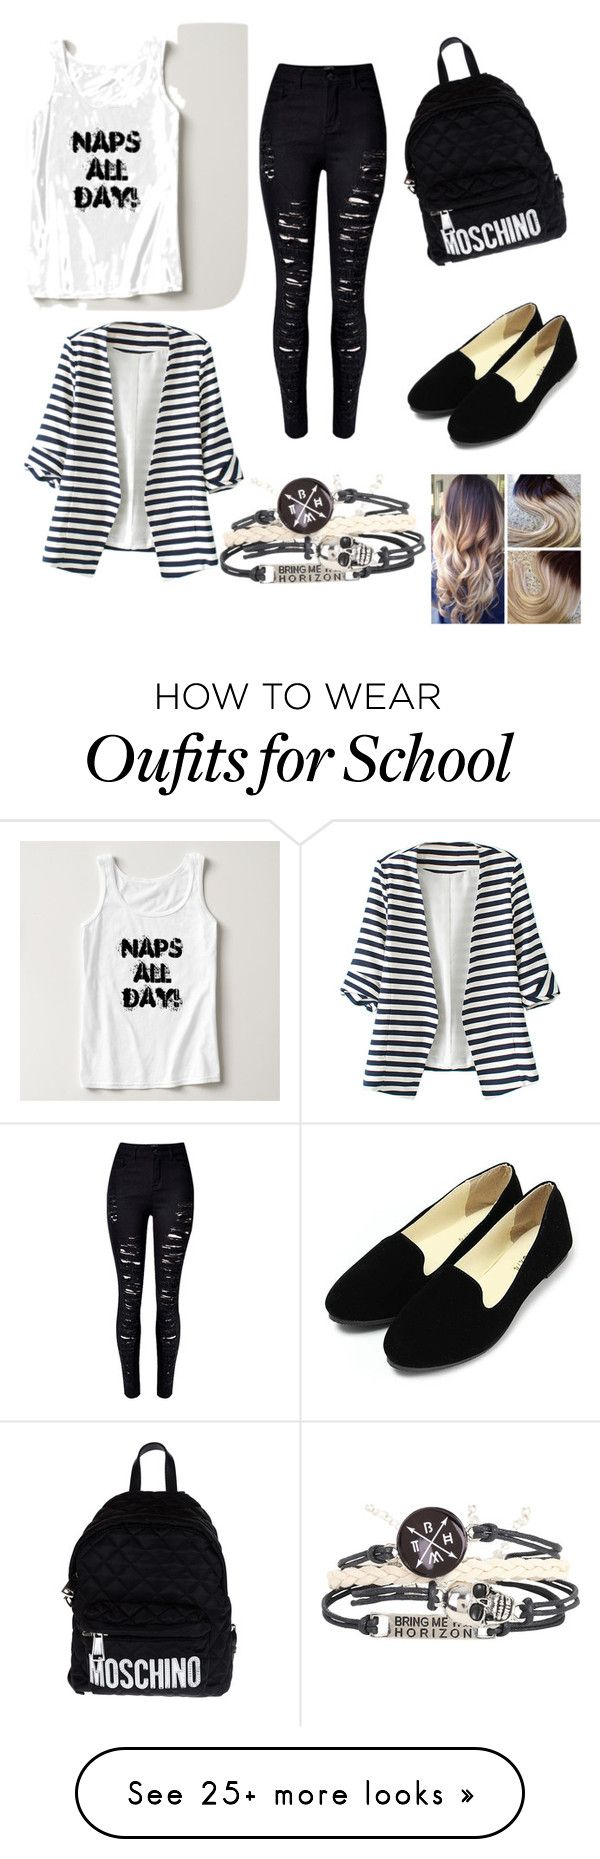 """""""School Outfit"""" by oanacode on Polyvore featuring Moschino, WithChic, women's clothing, women's fashion, women, female, woman, misses and juniors"""